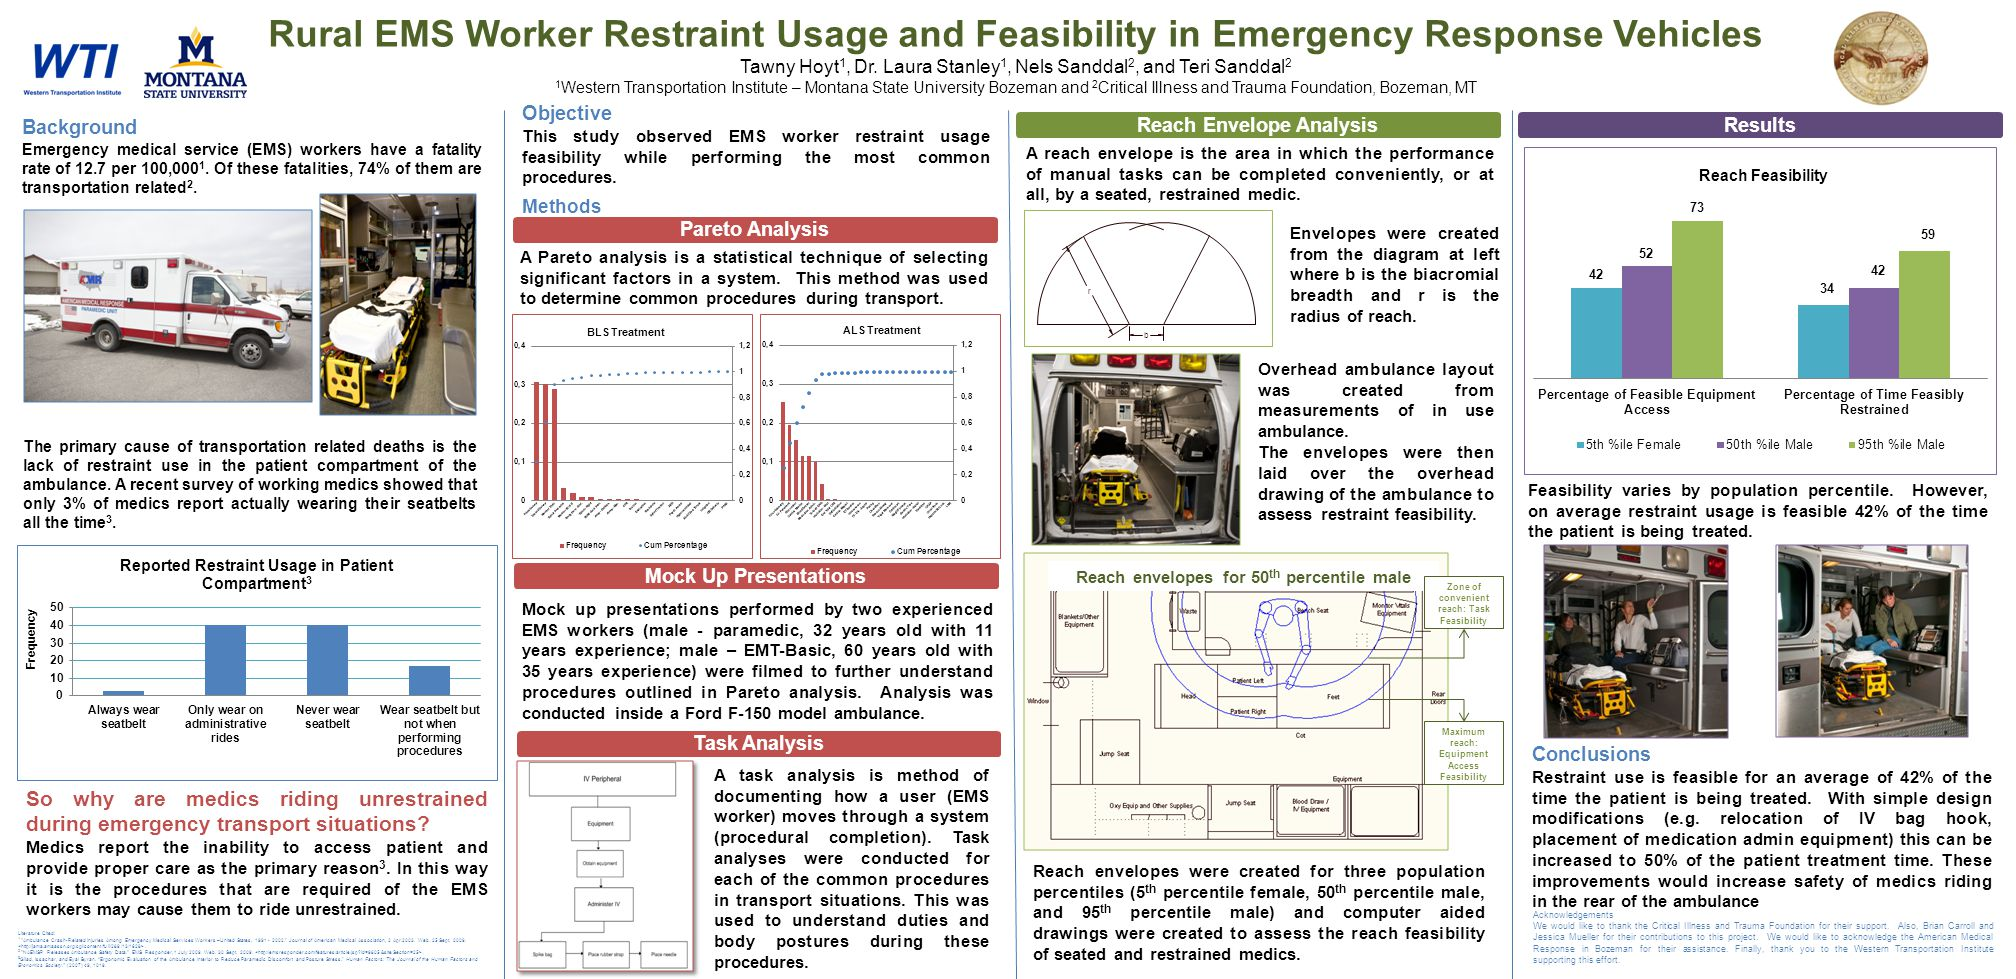 Objective This study observed EMS worker restraint usage feasibility while performing the most common procedures. Methods Rural EMS Worker Restraint U